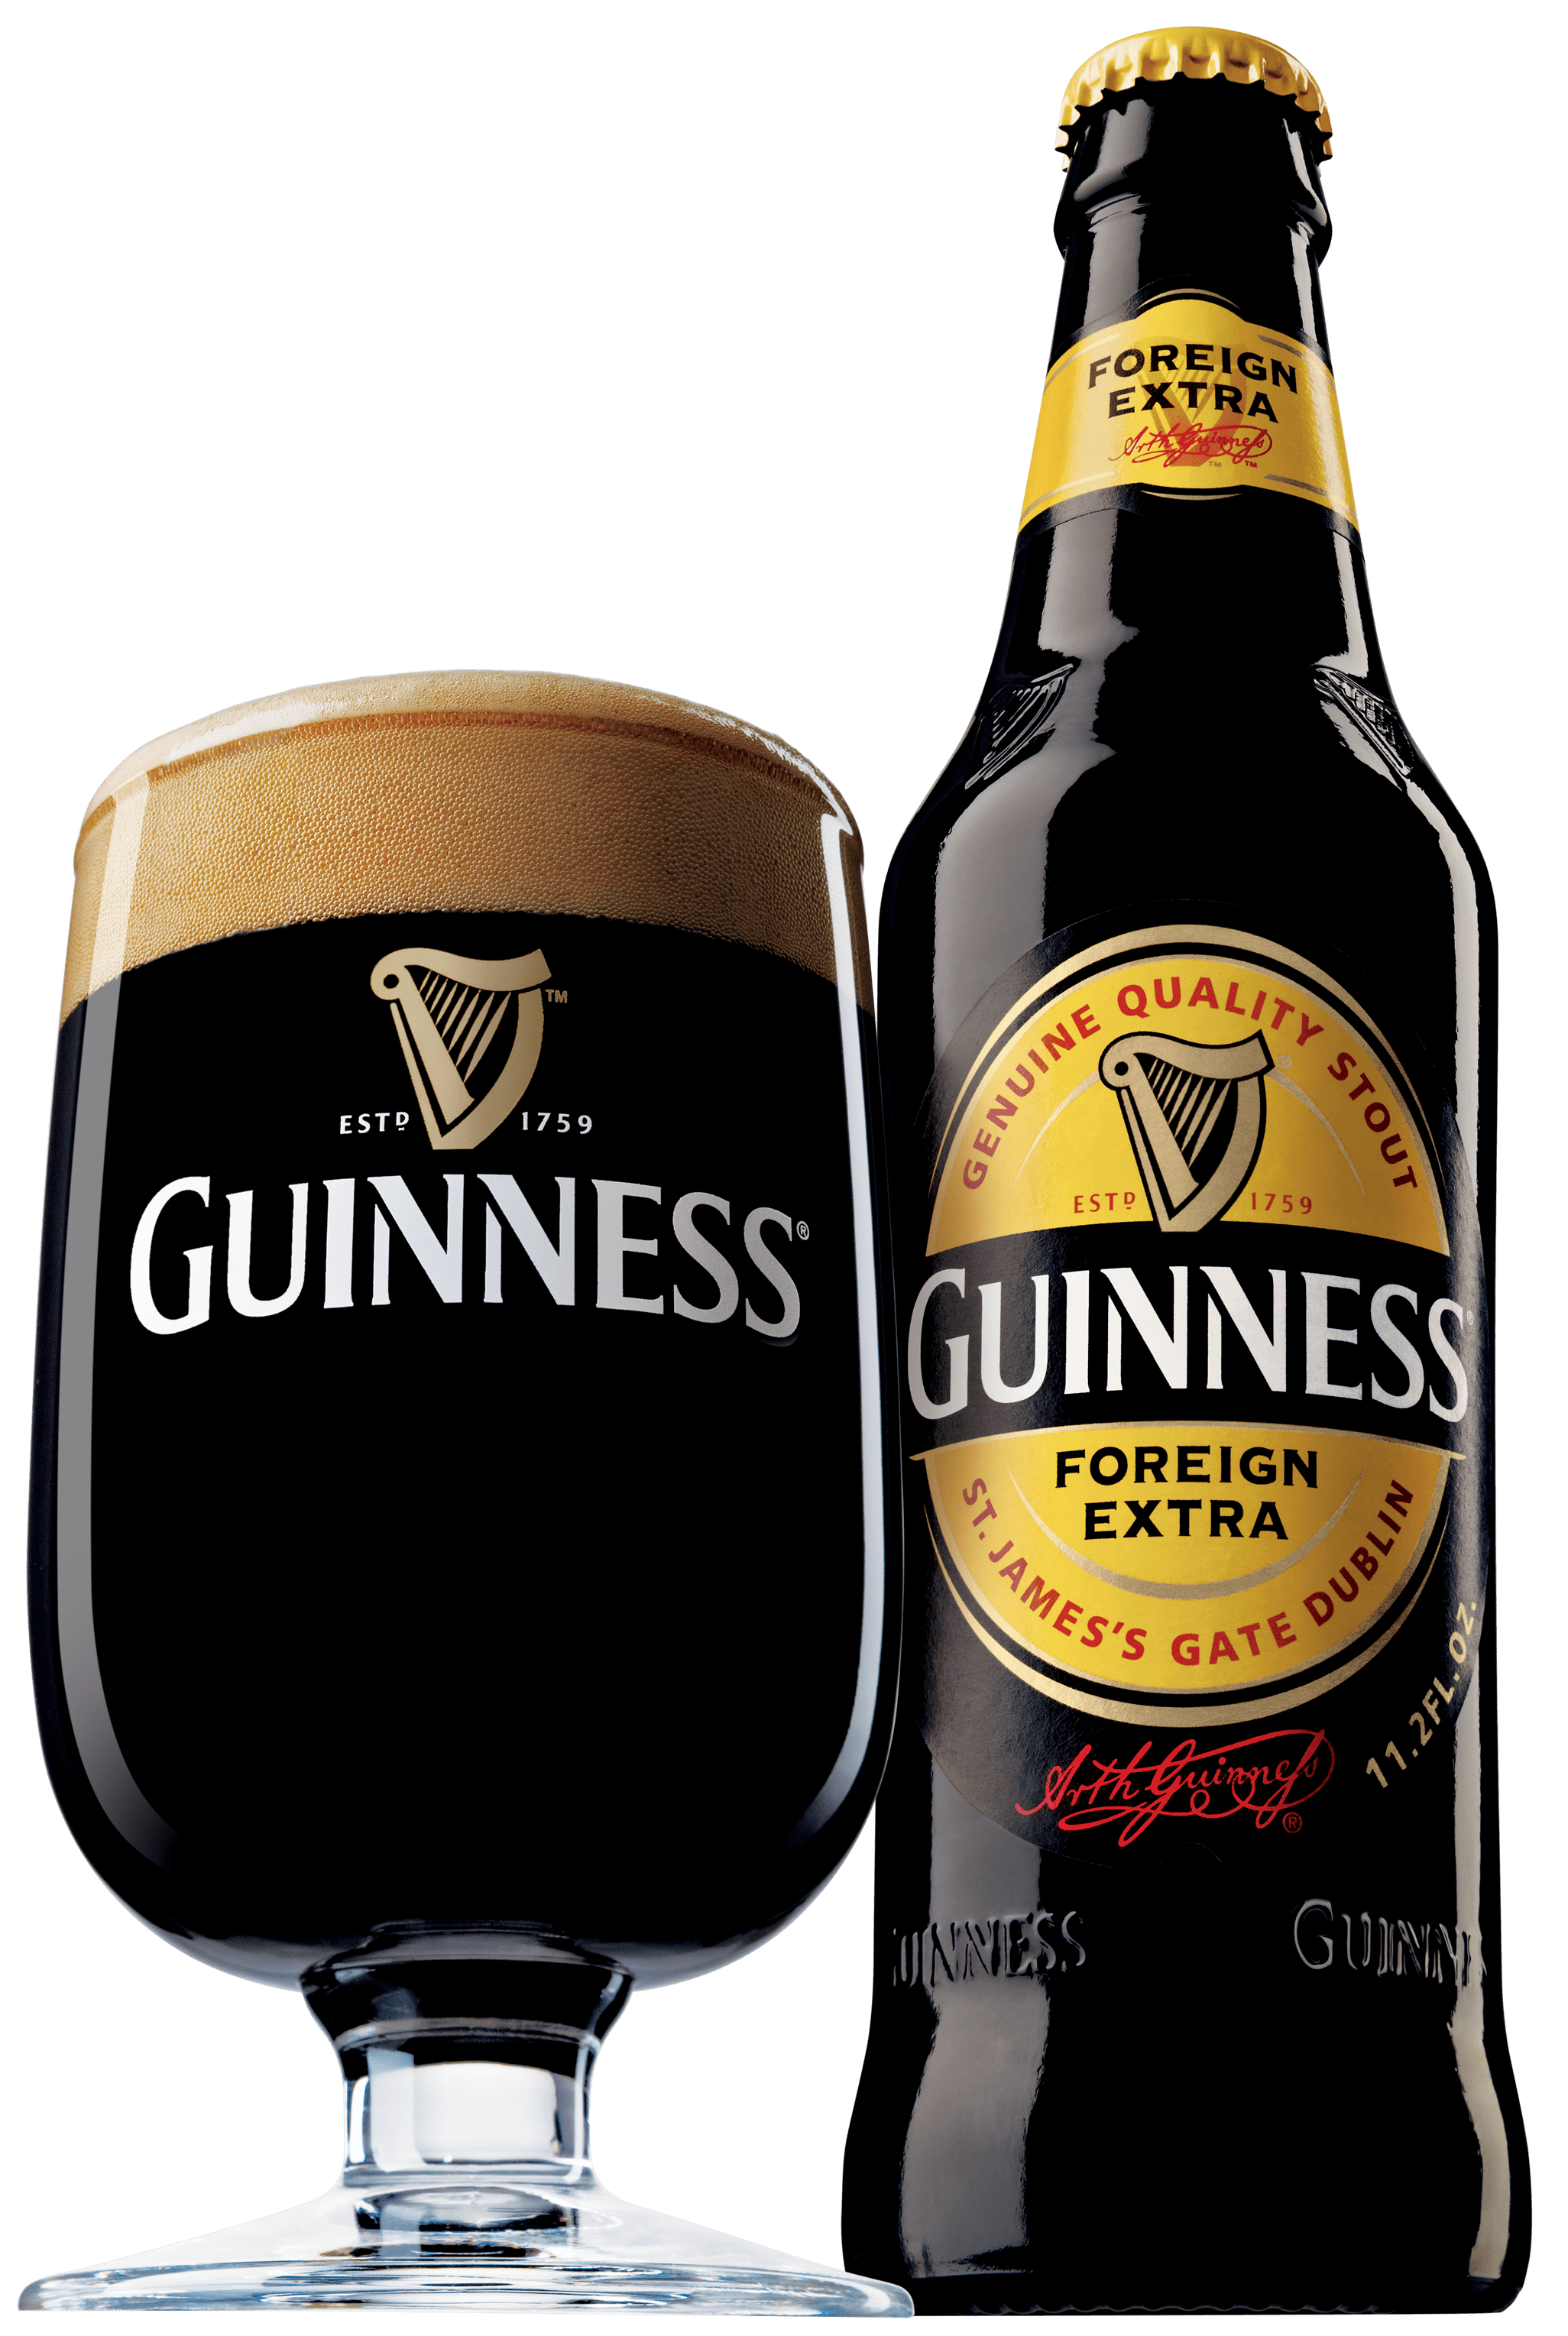 Guinness foreign extra bottle and glass transparent png for Guinness beer in ireland